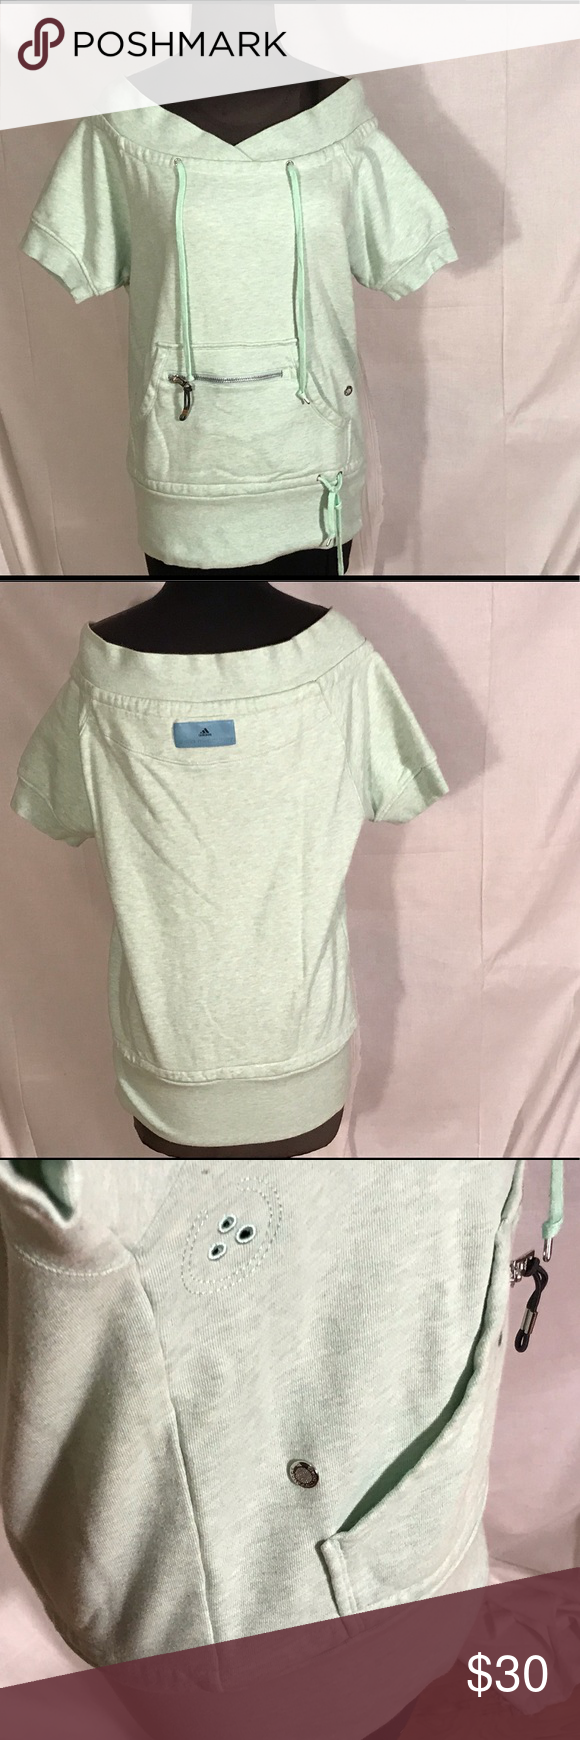 0b7f7abaf7648 Off the shoulder soft mint colored sweatshirt with logo. Size small Adidas  by Stella McCartney Tops Sweatshirts   Hoodies